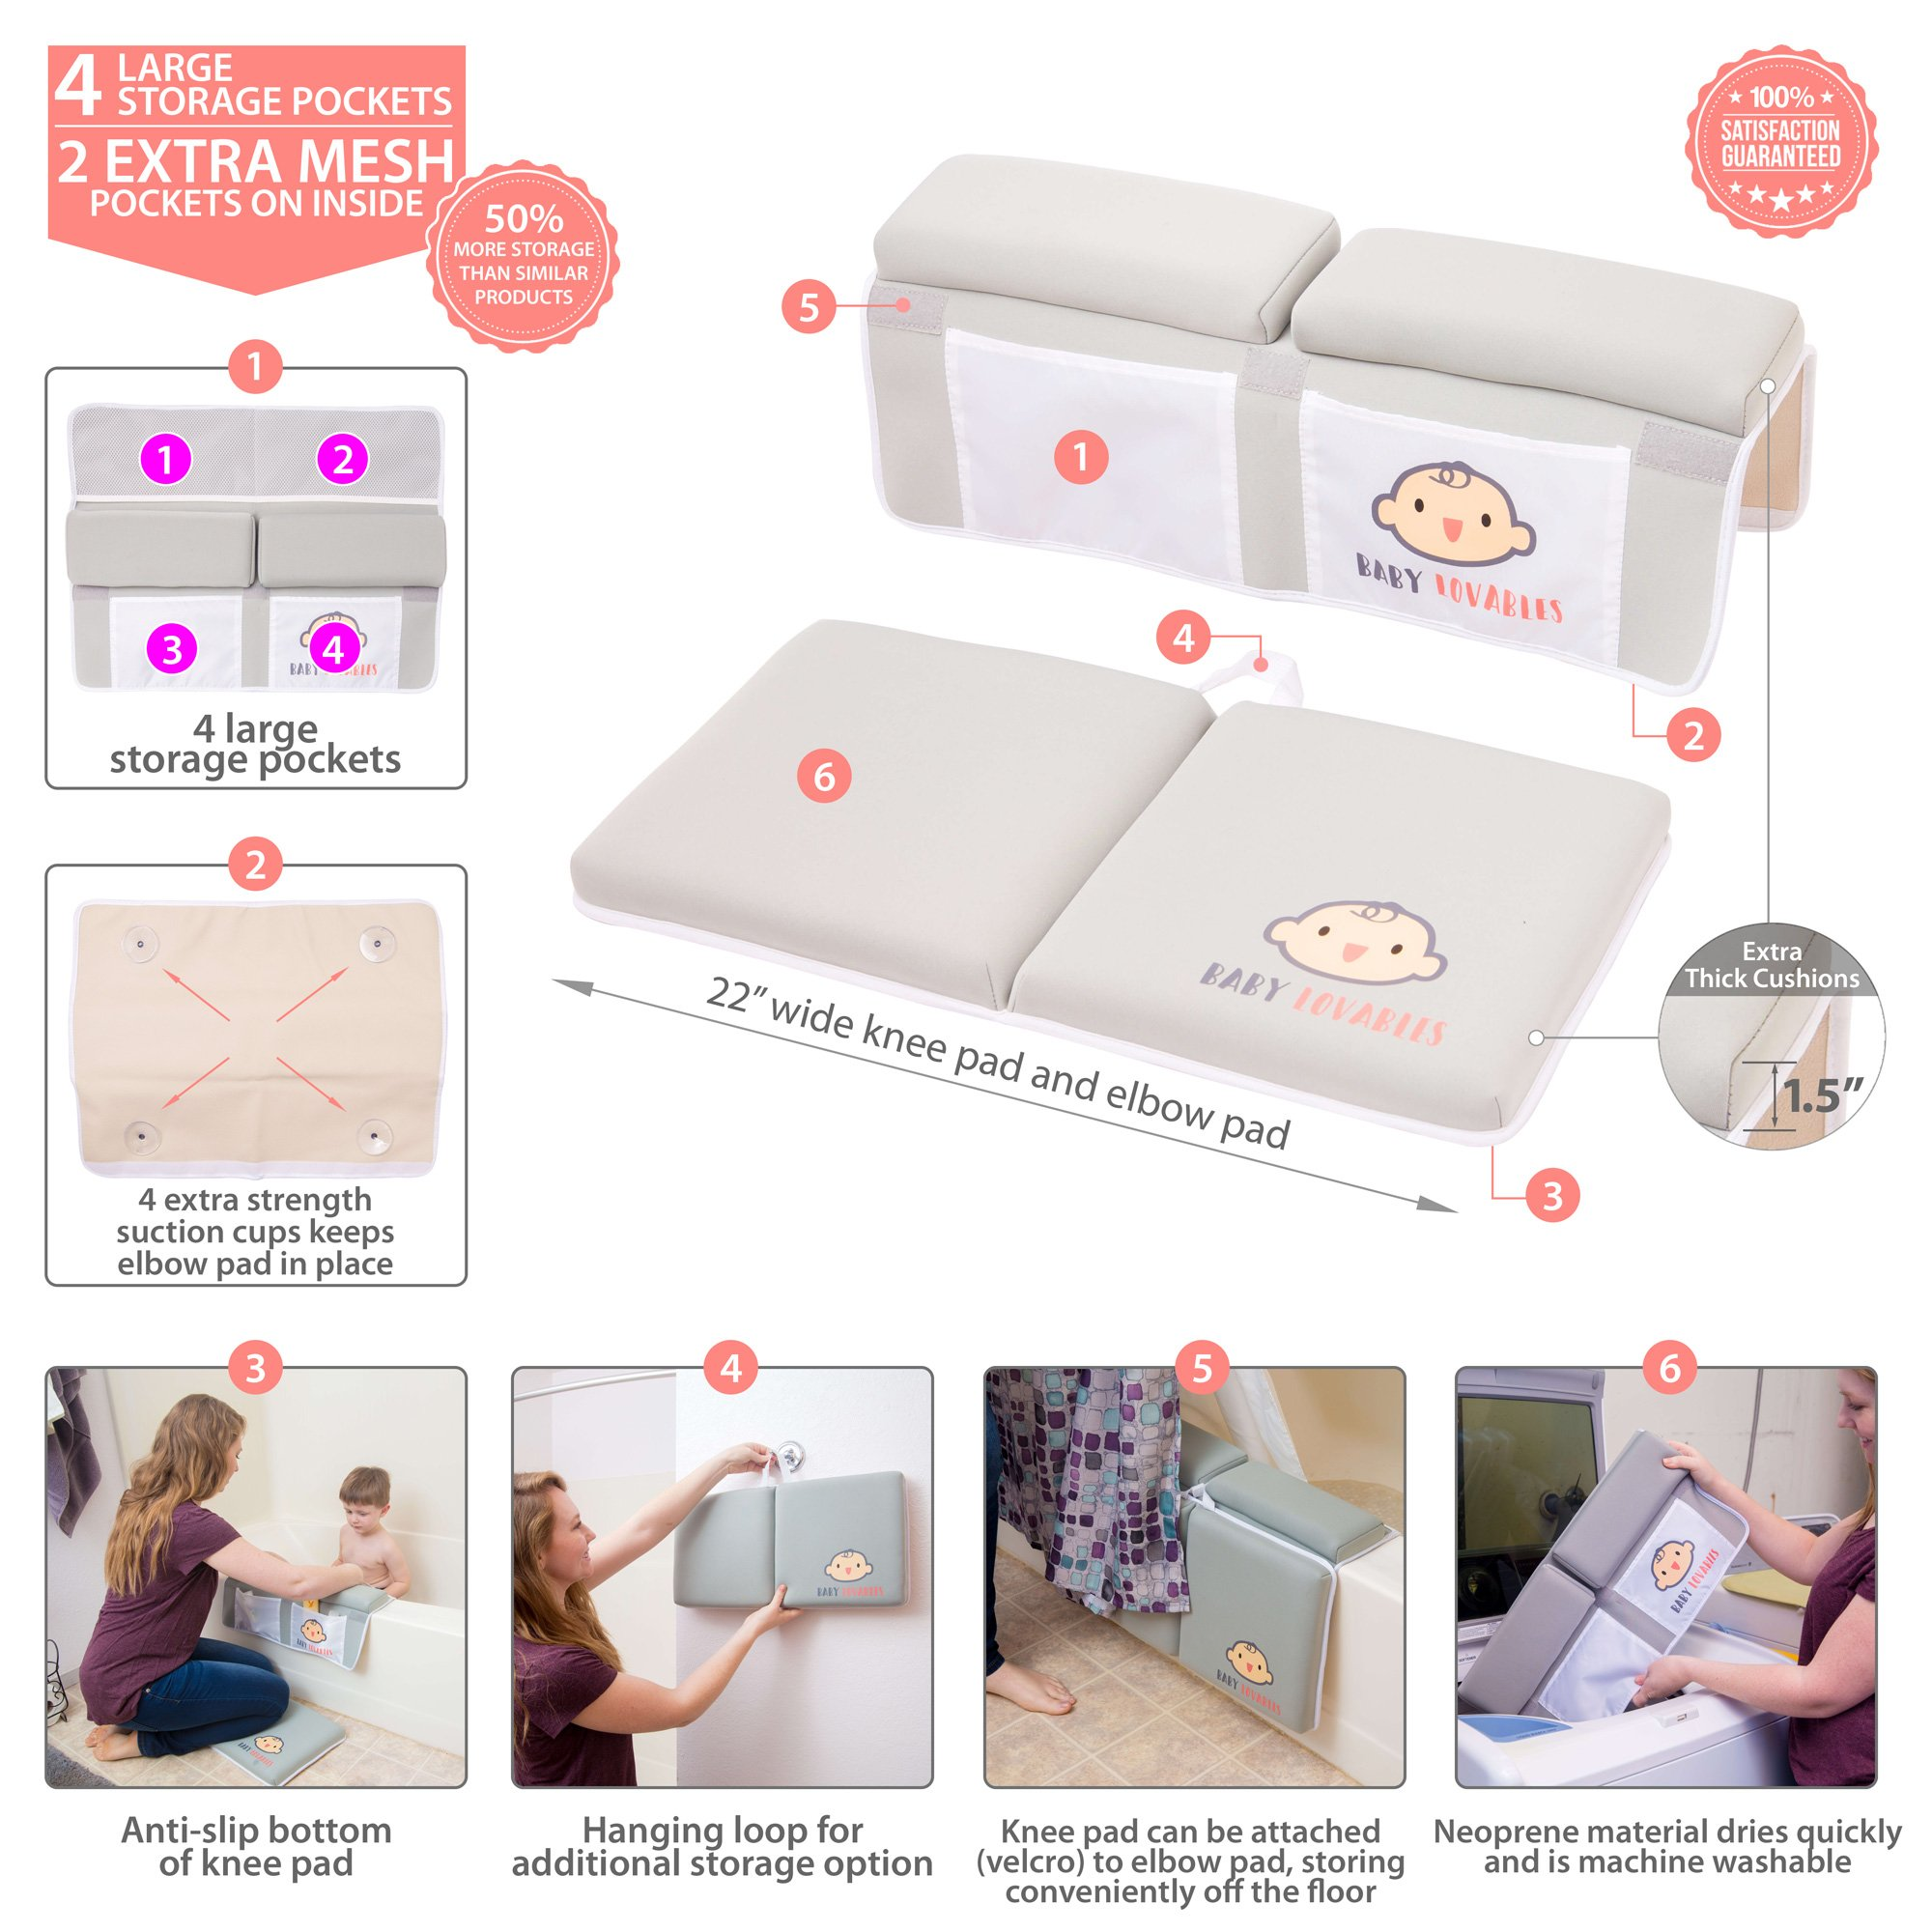 Bath Kneeler with Elbow pad Rest Set- Padded Knee mat for tub Bathing and Bathroom time. Bathtub Kneeling Waterproof Cushion mats for Infant or Baby Toy Accessories. Bathtime Knee Saver. Shower Gift. by BABY LOVABLES (Image #1)